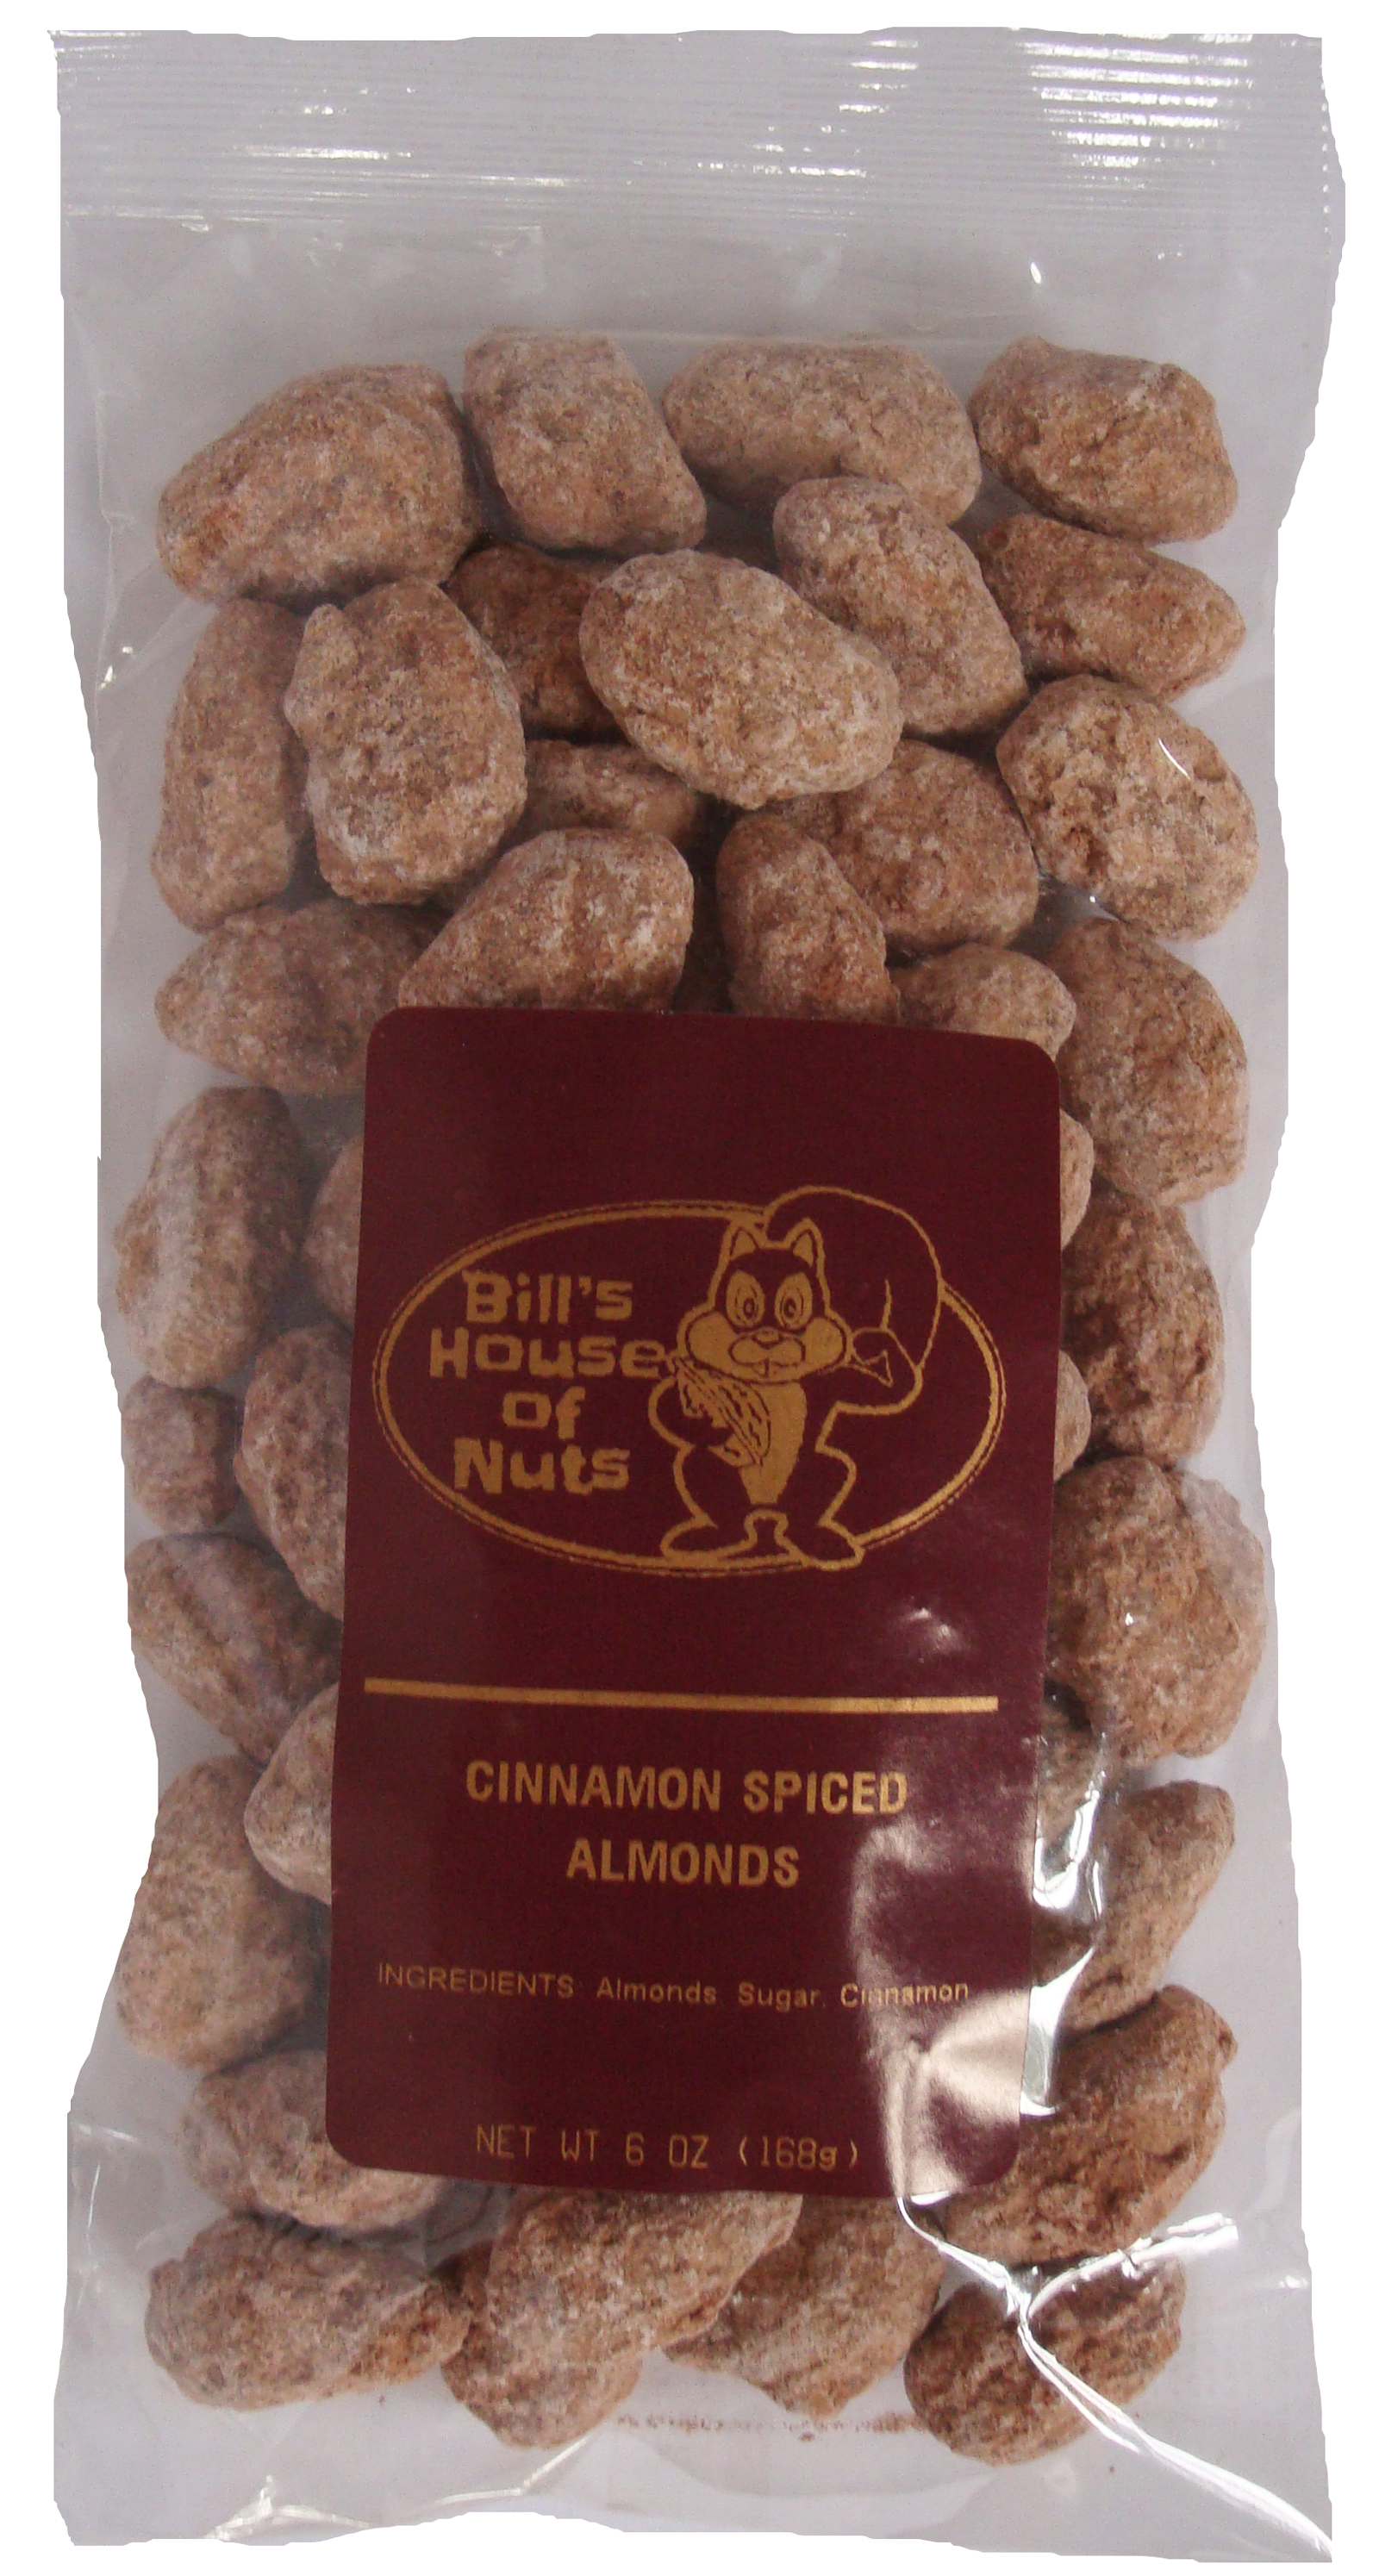 Cinnamon Spiced Almonds